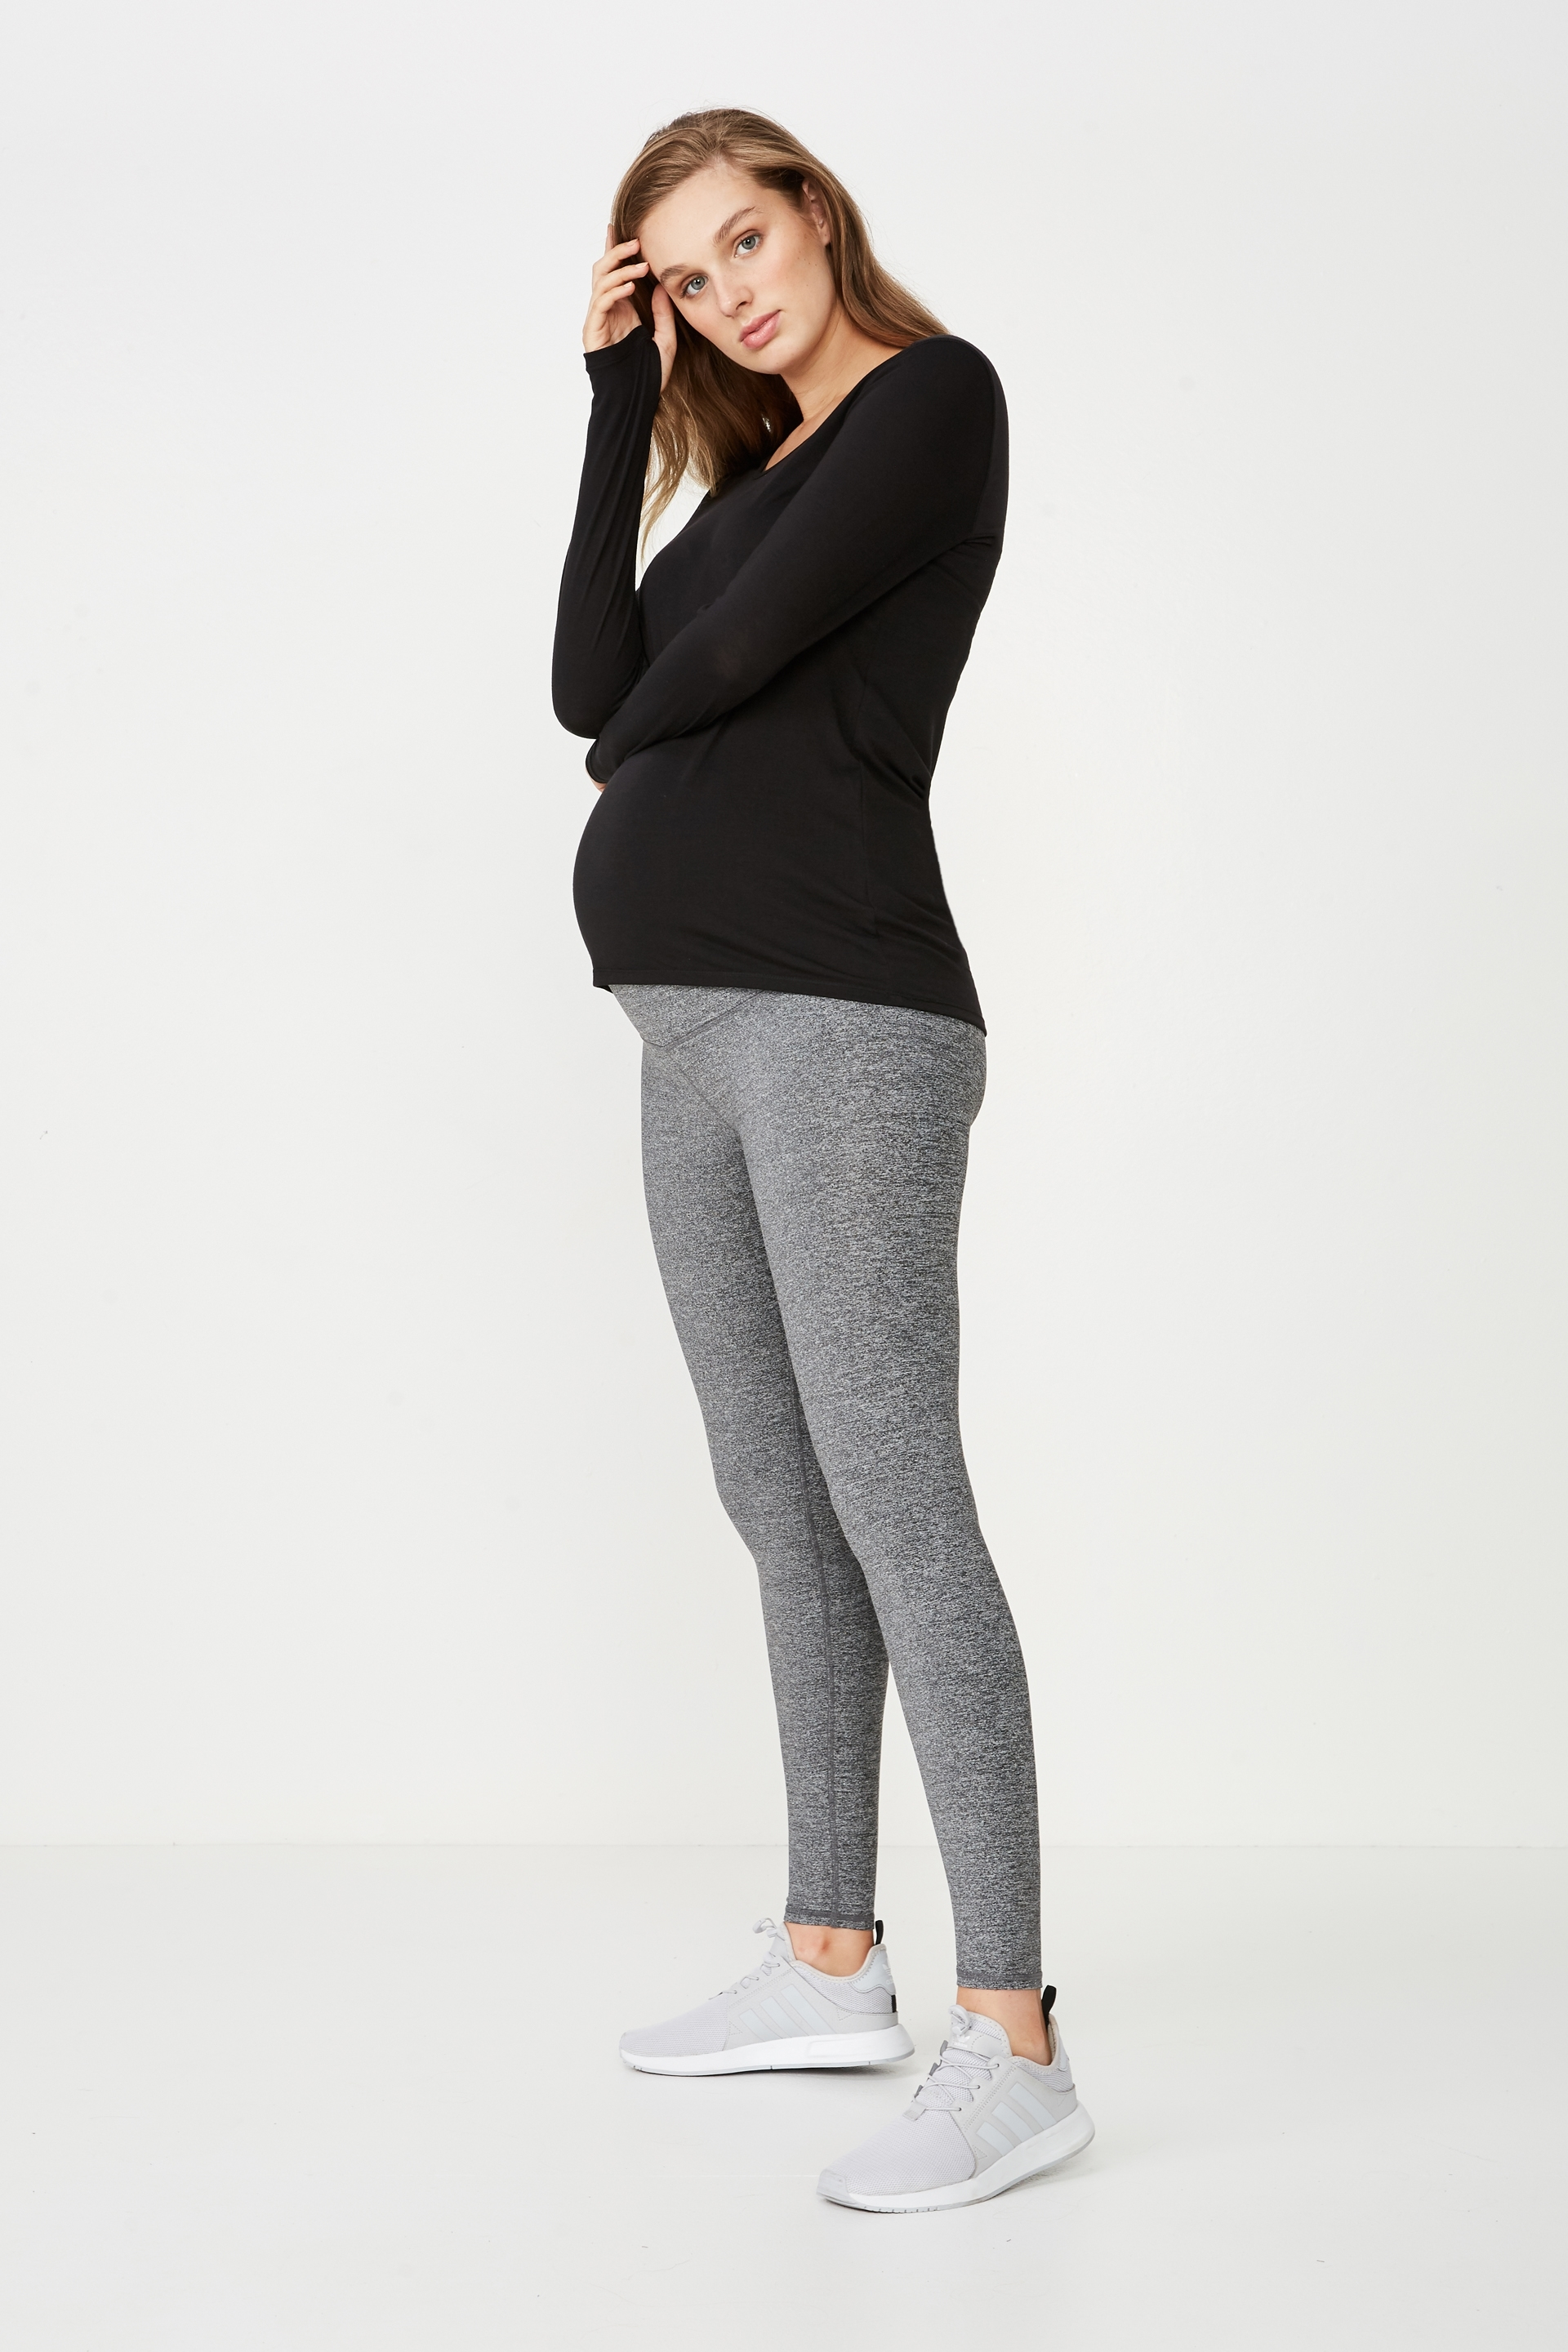 aac0ec124c84d Maternity Core Tight Over Belly | Women's Lifestyle Fashion Brand ...